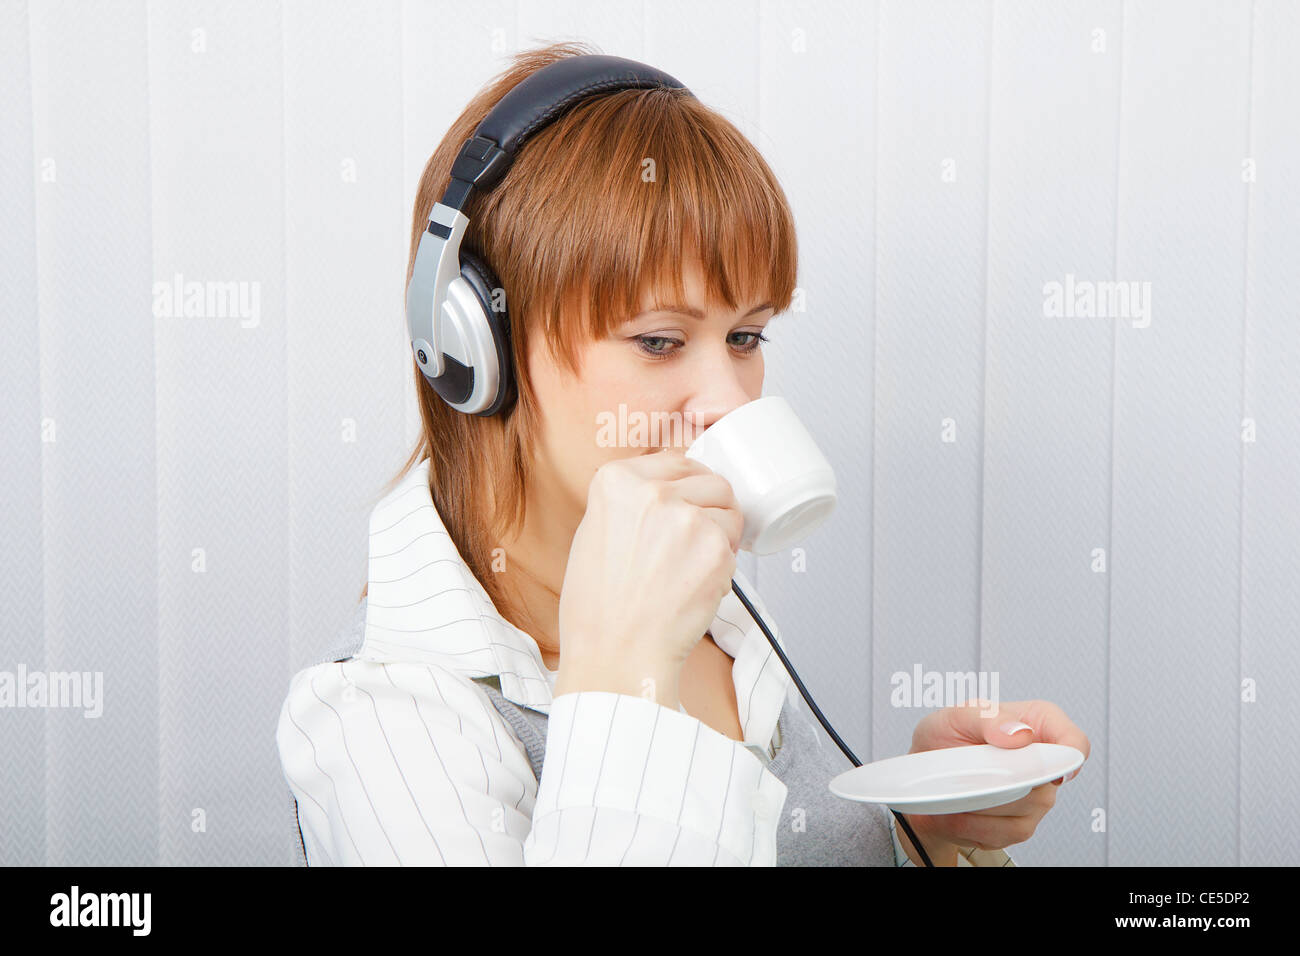 The girl in headphones with a microphone drinks coffee Stock Photo